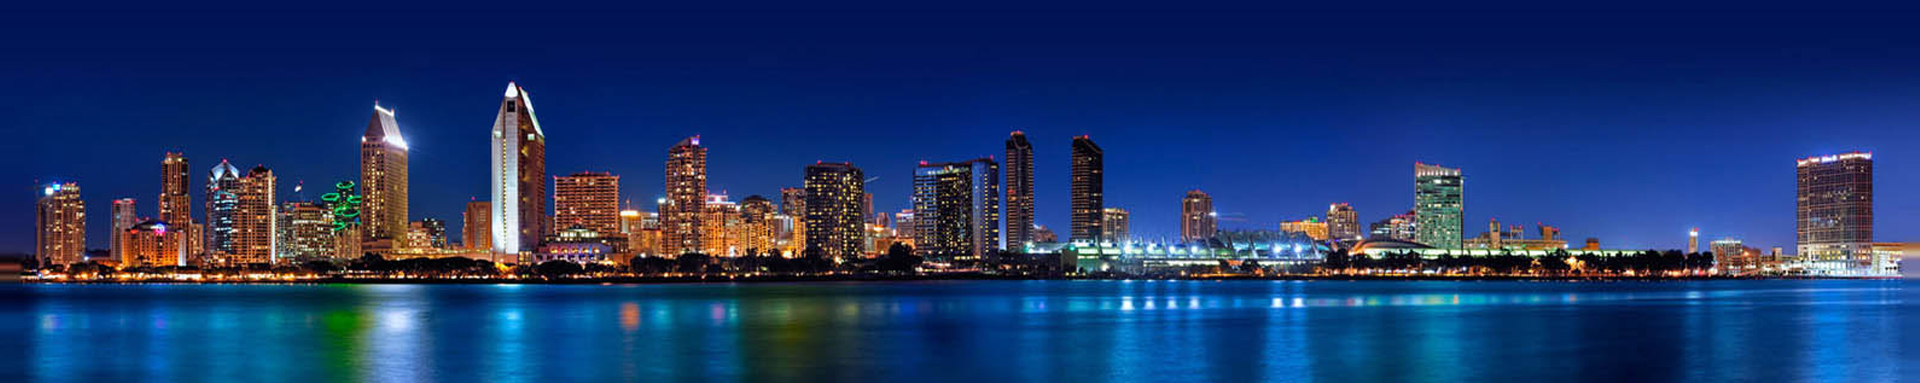 Dubai Properties for Rent | Apartments or Villa Available for Rent in Palm Jumeirah, Downtown, Business Bay, Dubai Marina